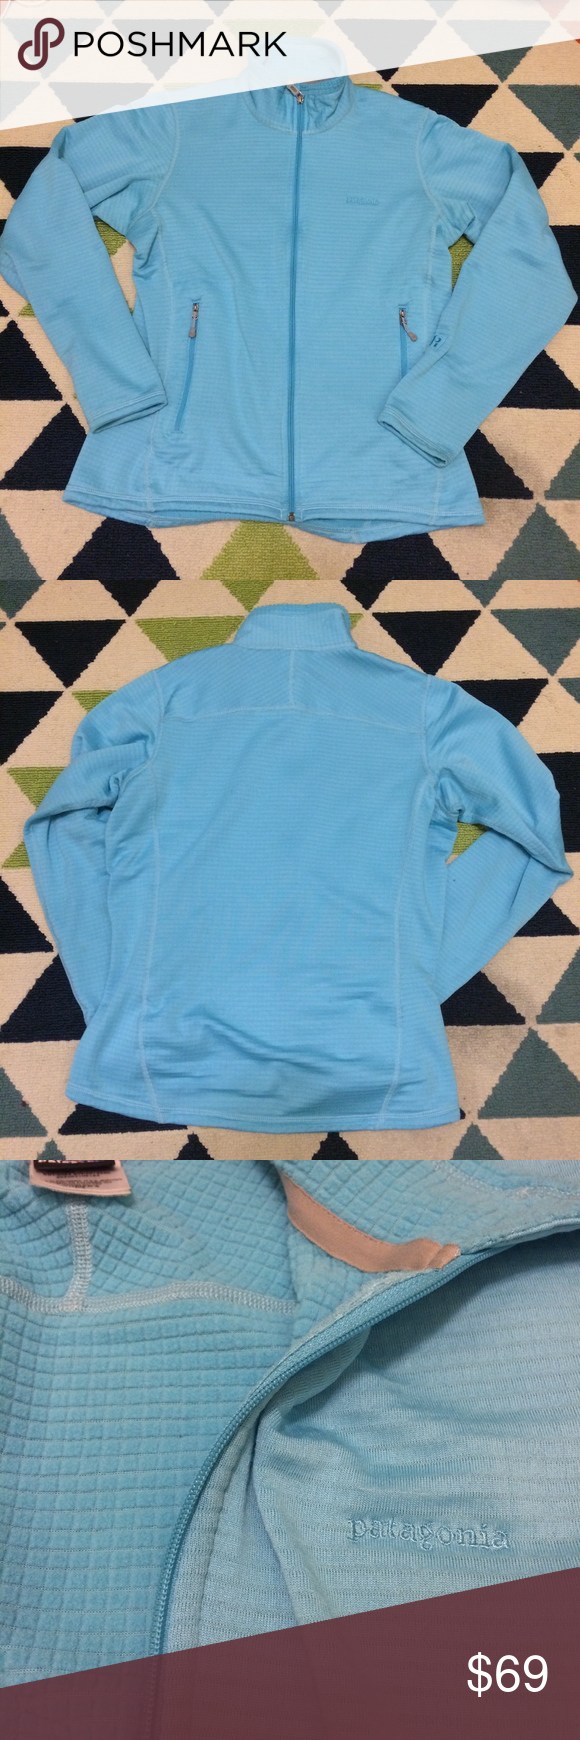 Patagonia Blue R1 Full Zip Jacket Sweater Patagonia blue